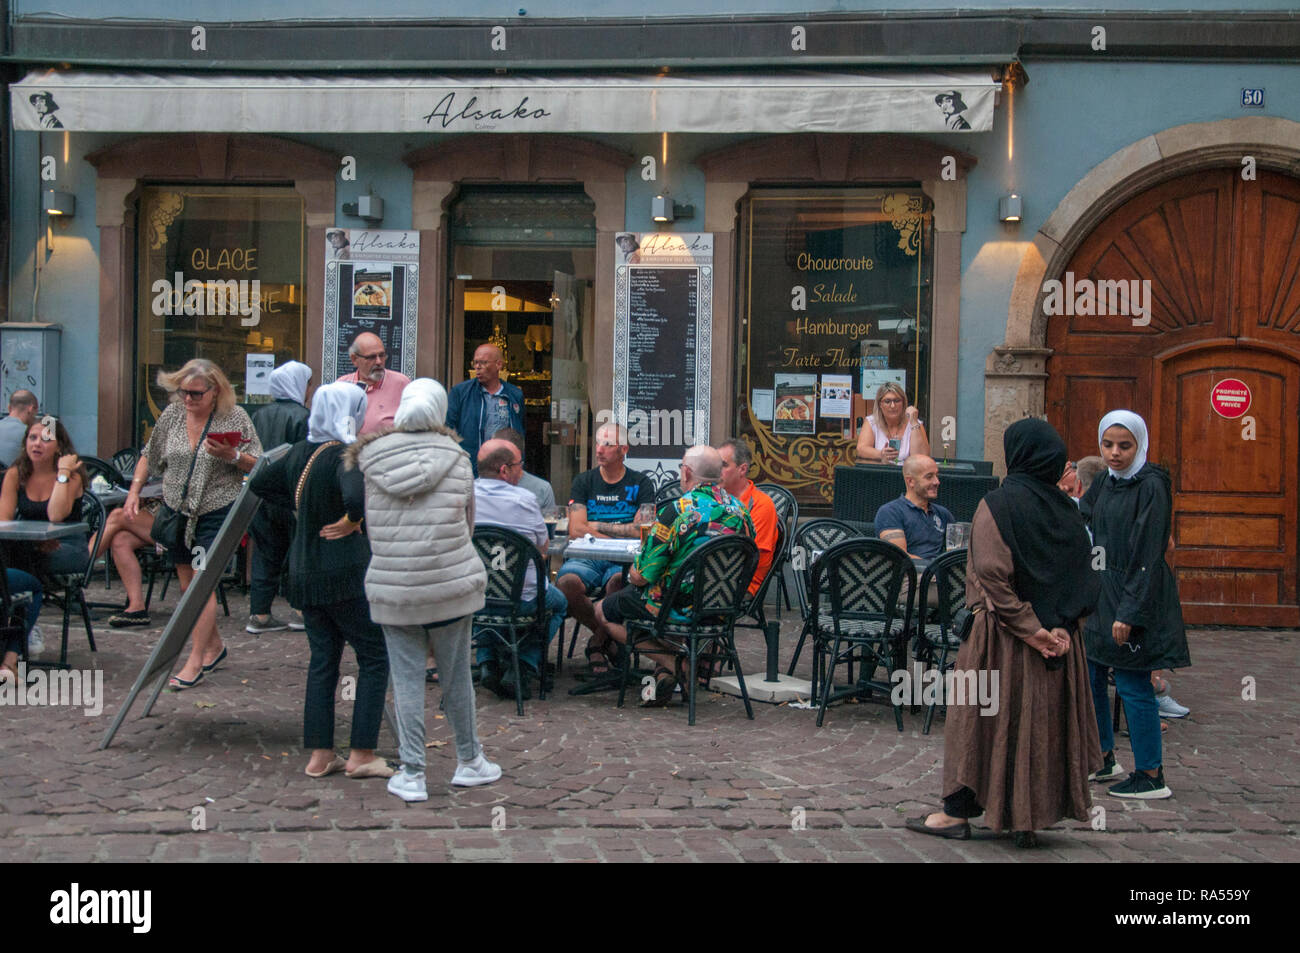 Clash of cultures: female Muslim tourists observe western tourists drinking outside a bar in Colmar, Alsace, France - Stock Image